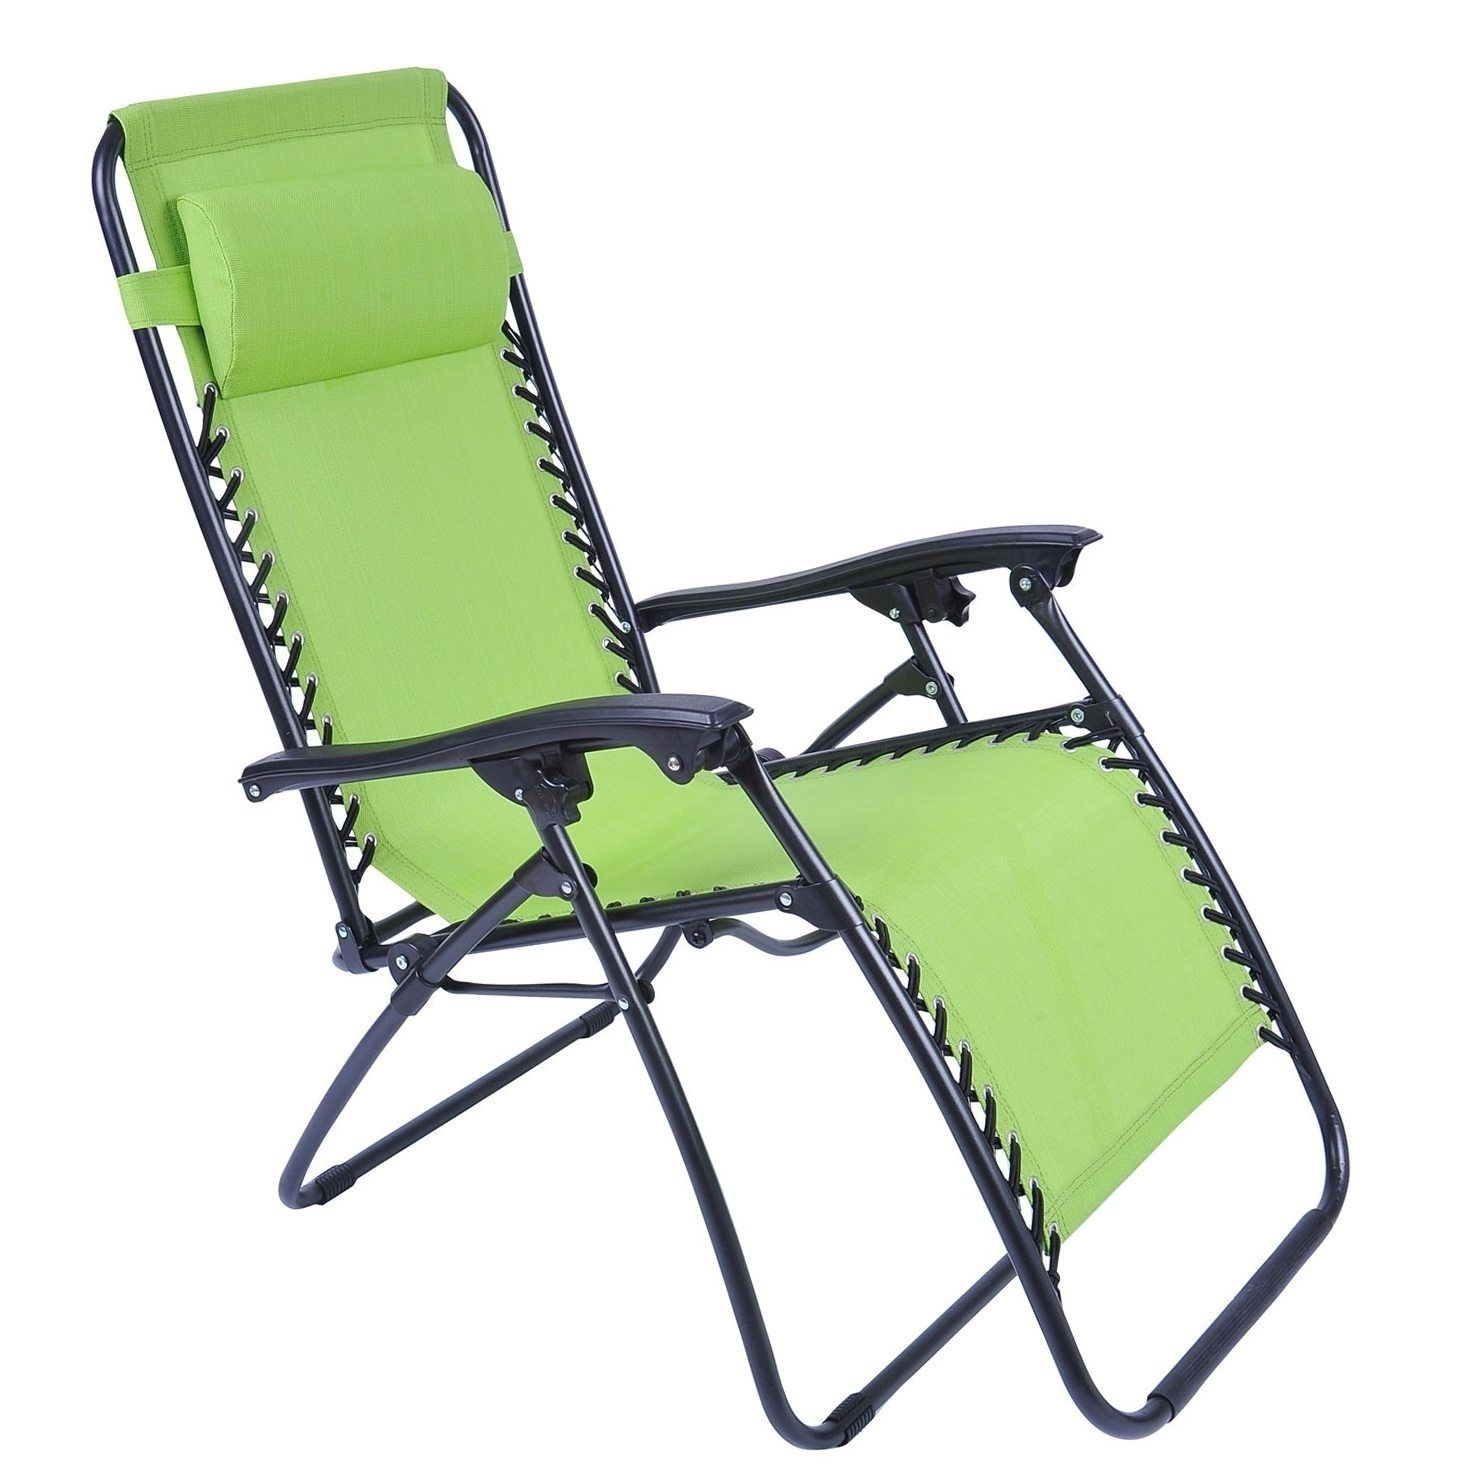 Lounge Chair Outdoor Folding Folding Chaise Lounge Chair Patio In Well Known Folding Chaise Lounge Lawn Chairs (View 9 of 15)